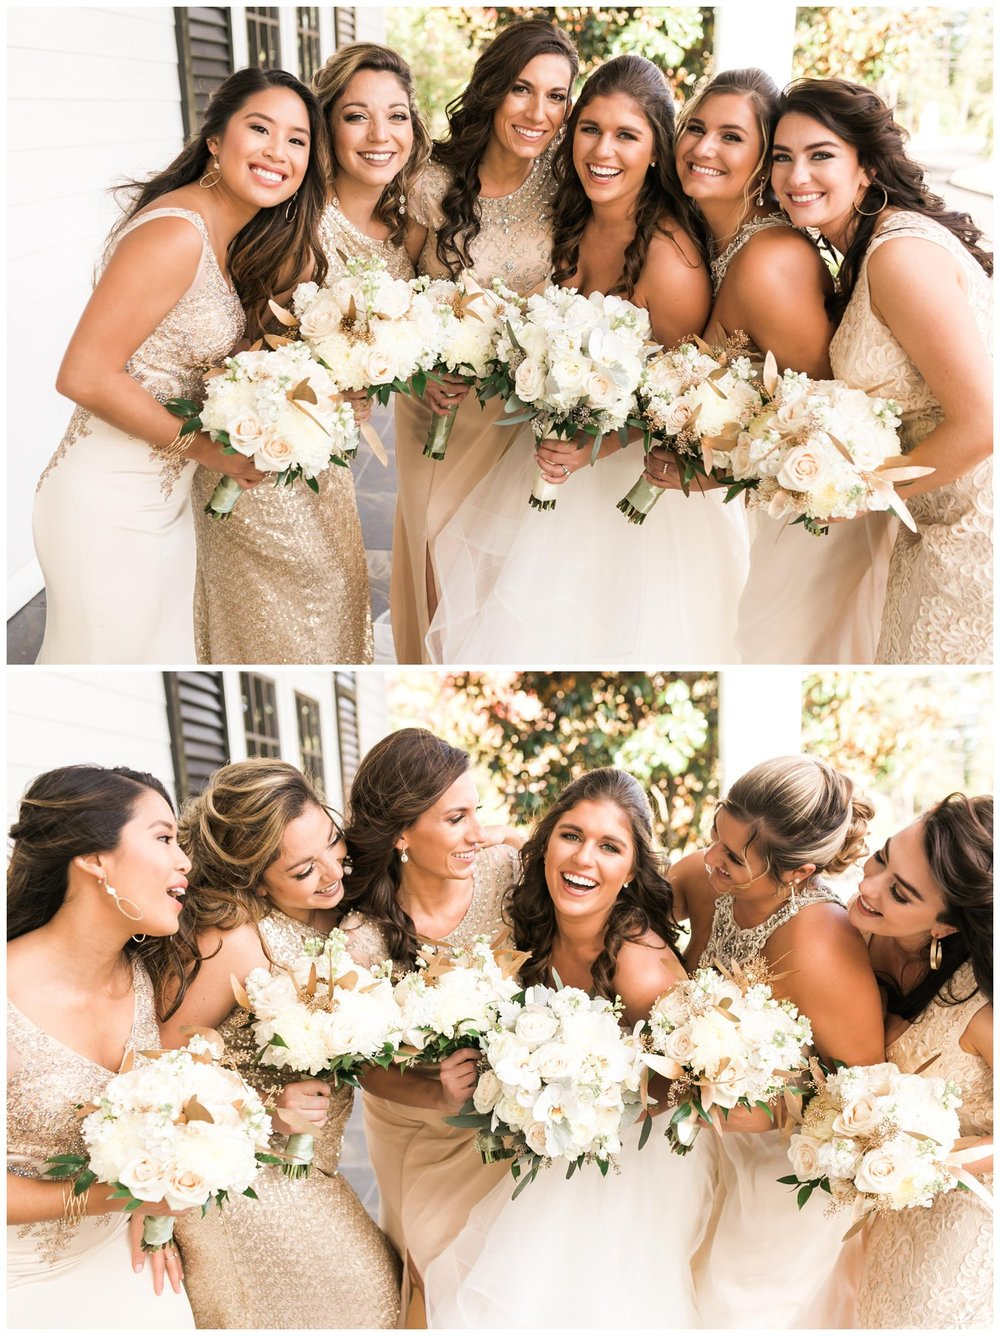 JenandEd_NewJerseyWedding_CarriageHouse_Galloway_NJ__SouthJersey_Wedding_Photographer_MagdalenaStudios_0256.jpg